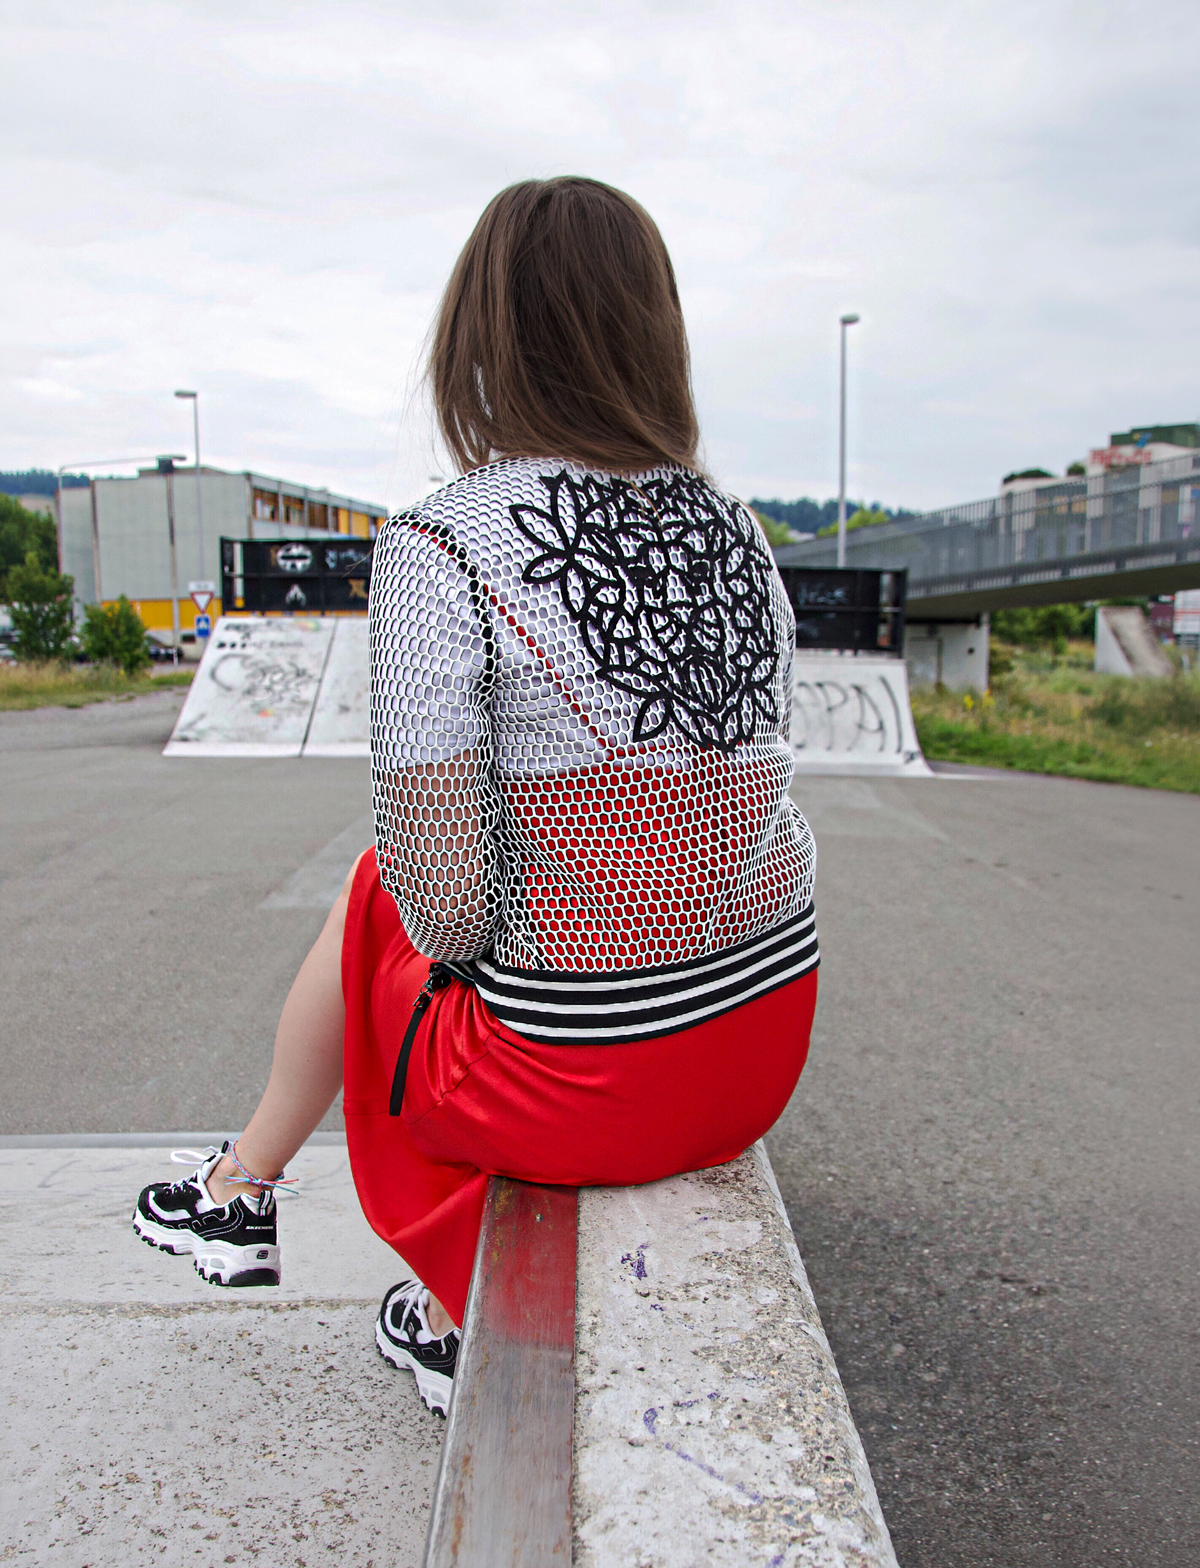 Layering Look with a red dress over a print shirt with sneakers and a small sunglasses. Trend Look for a casual day in Lucerne by Andrea from Strawberries 'n' Champagne.